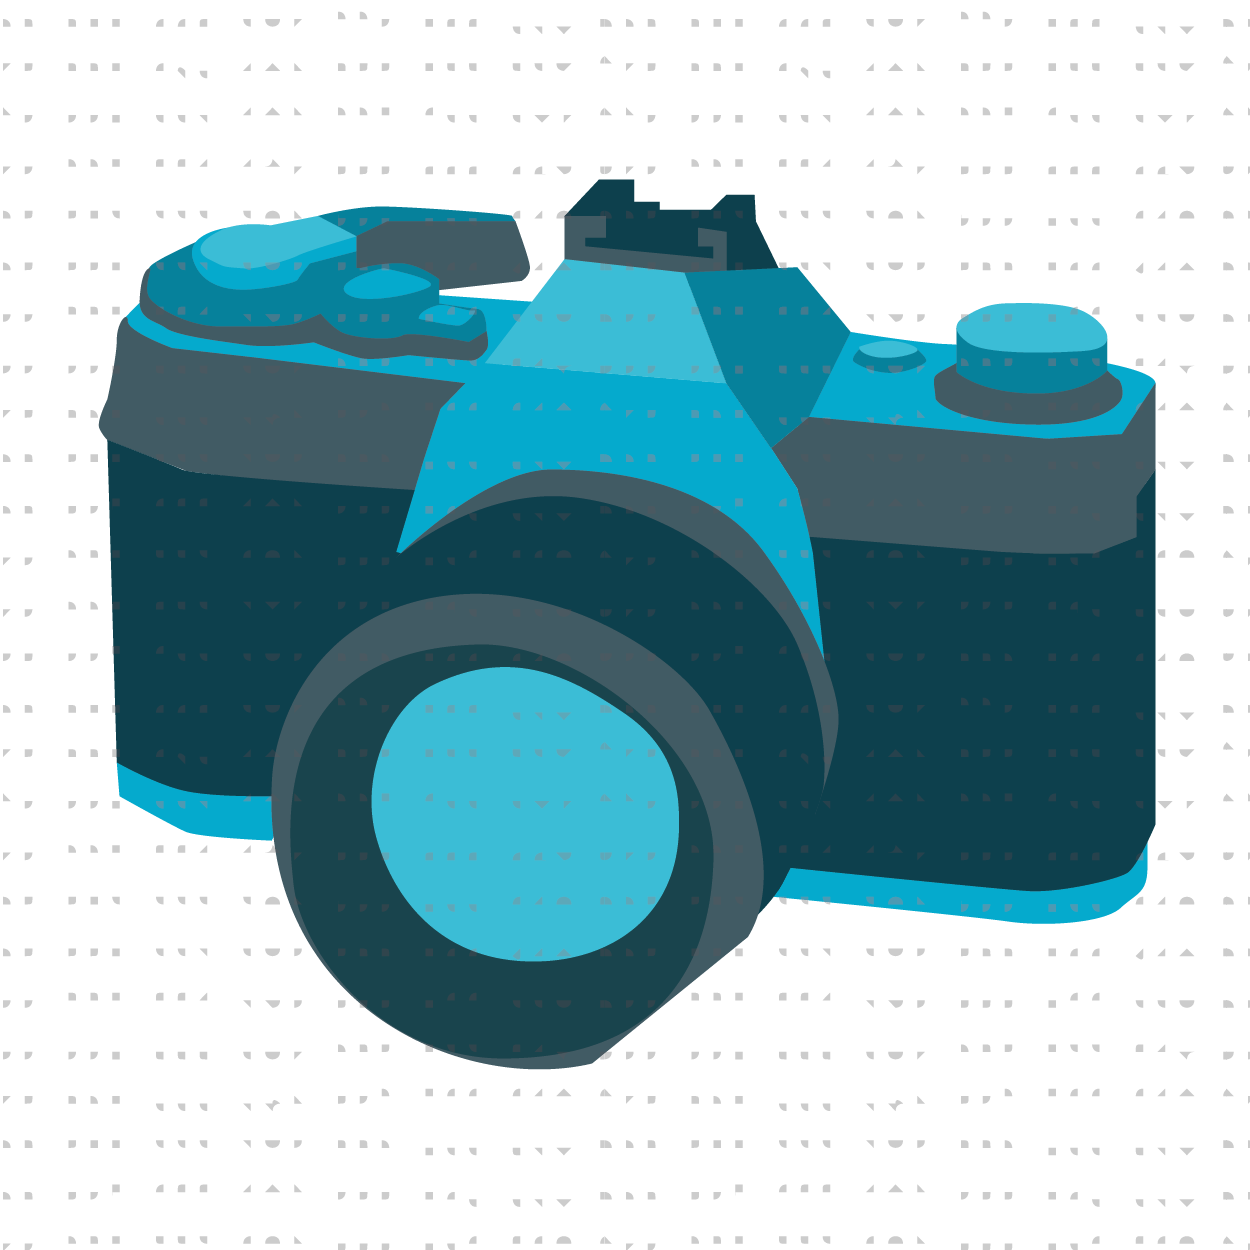 Camera illustration for Students of the World